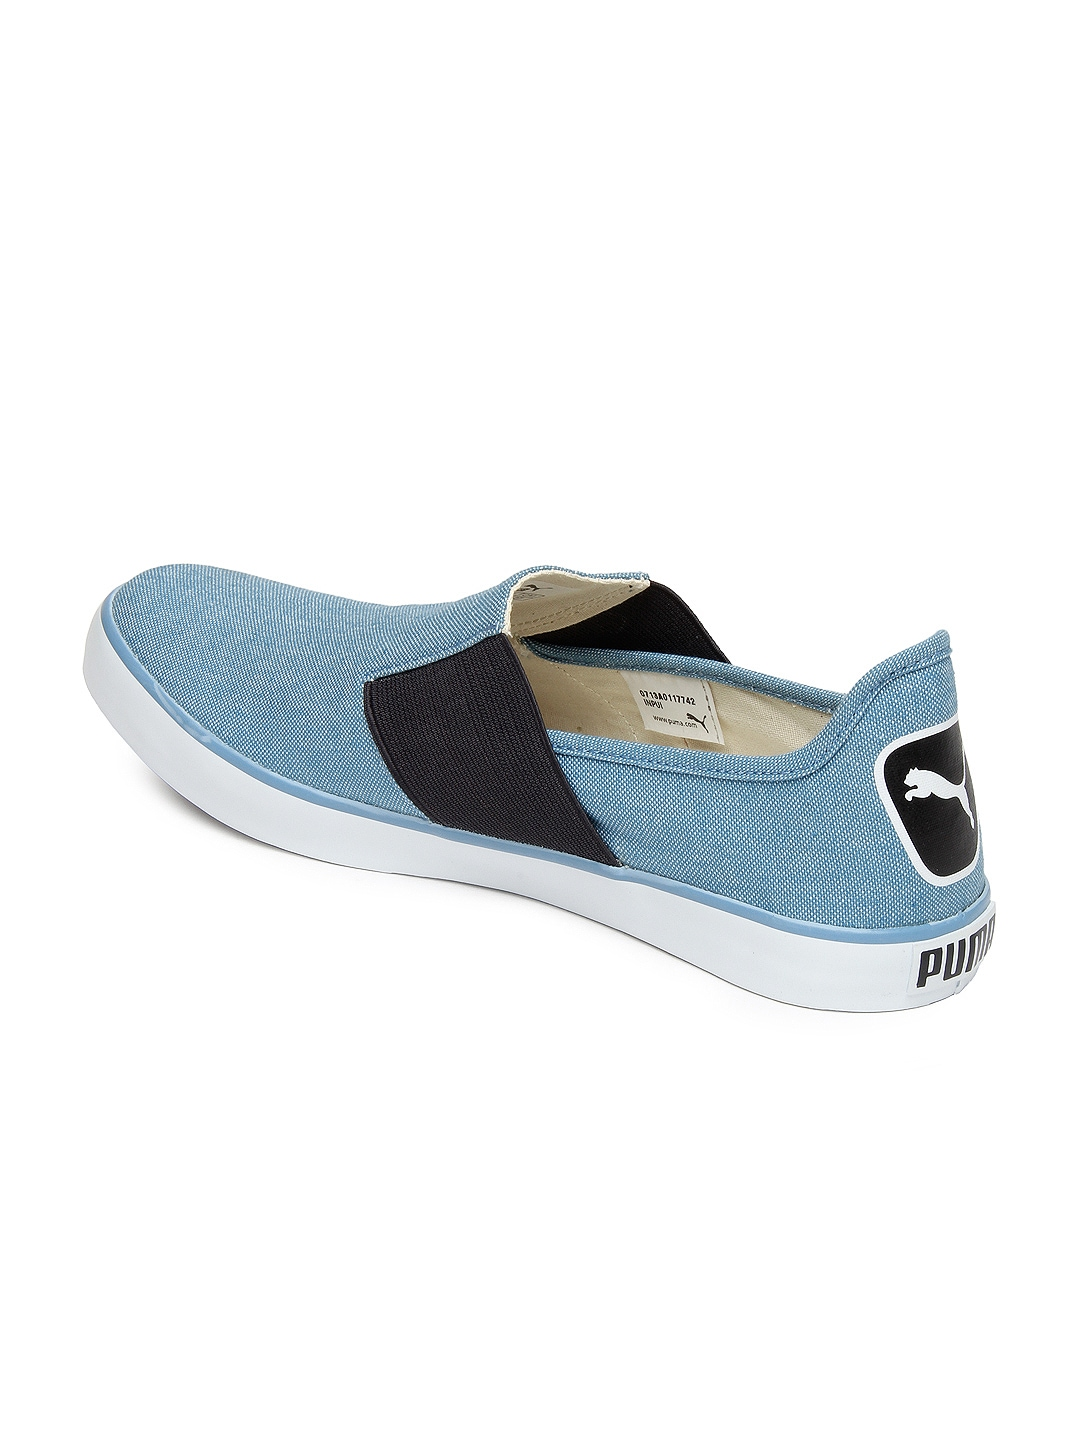 Online Buy Shoes On Blue Men Slip 1345805 Puma For Lazy Casual redxBoWC